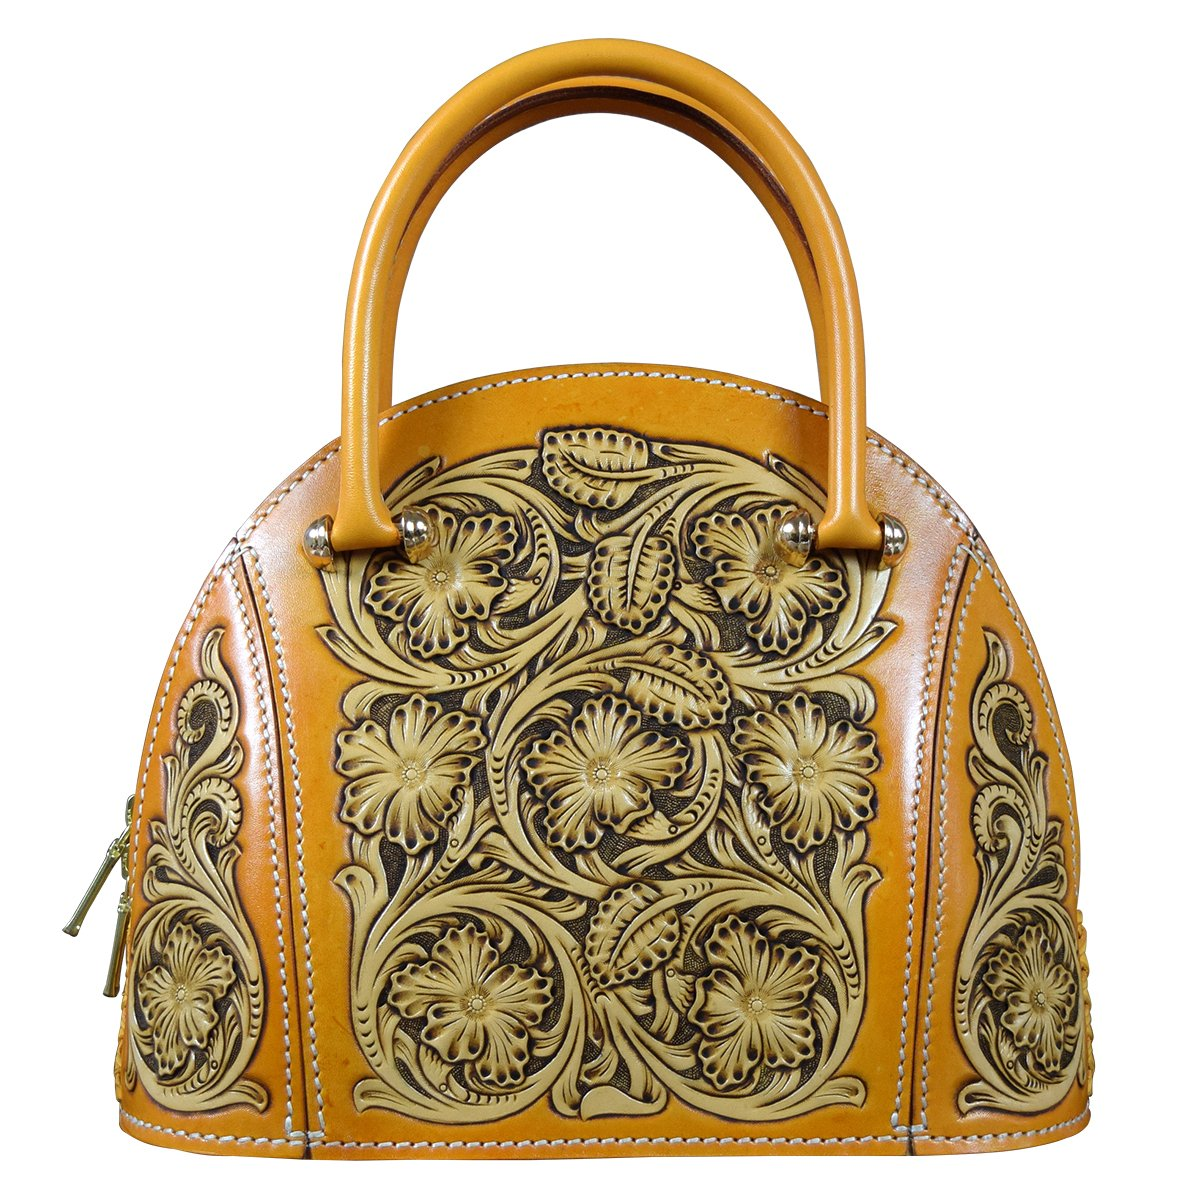 OLG.YAT Vegetable Tanned Leather Lady Handbags Retro Little Bow Leisure Purse HKBH